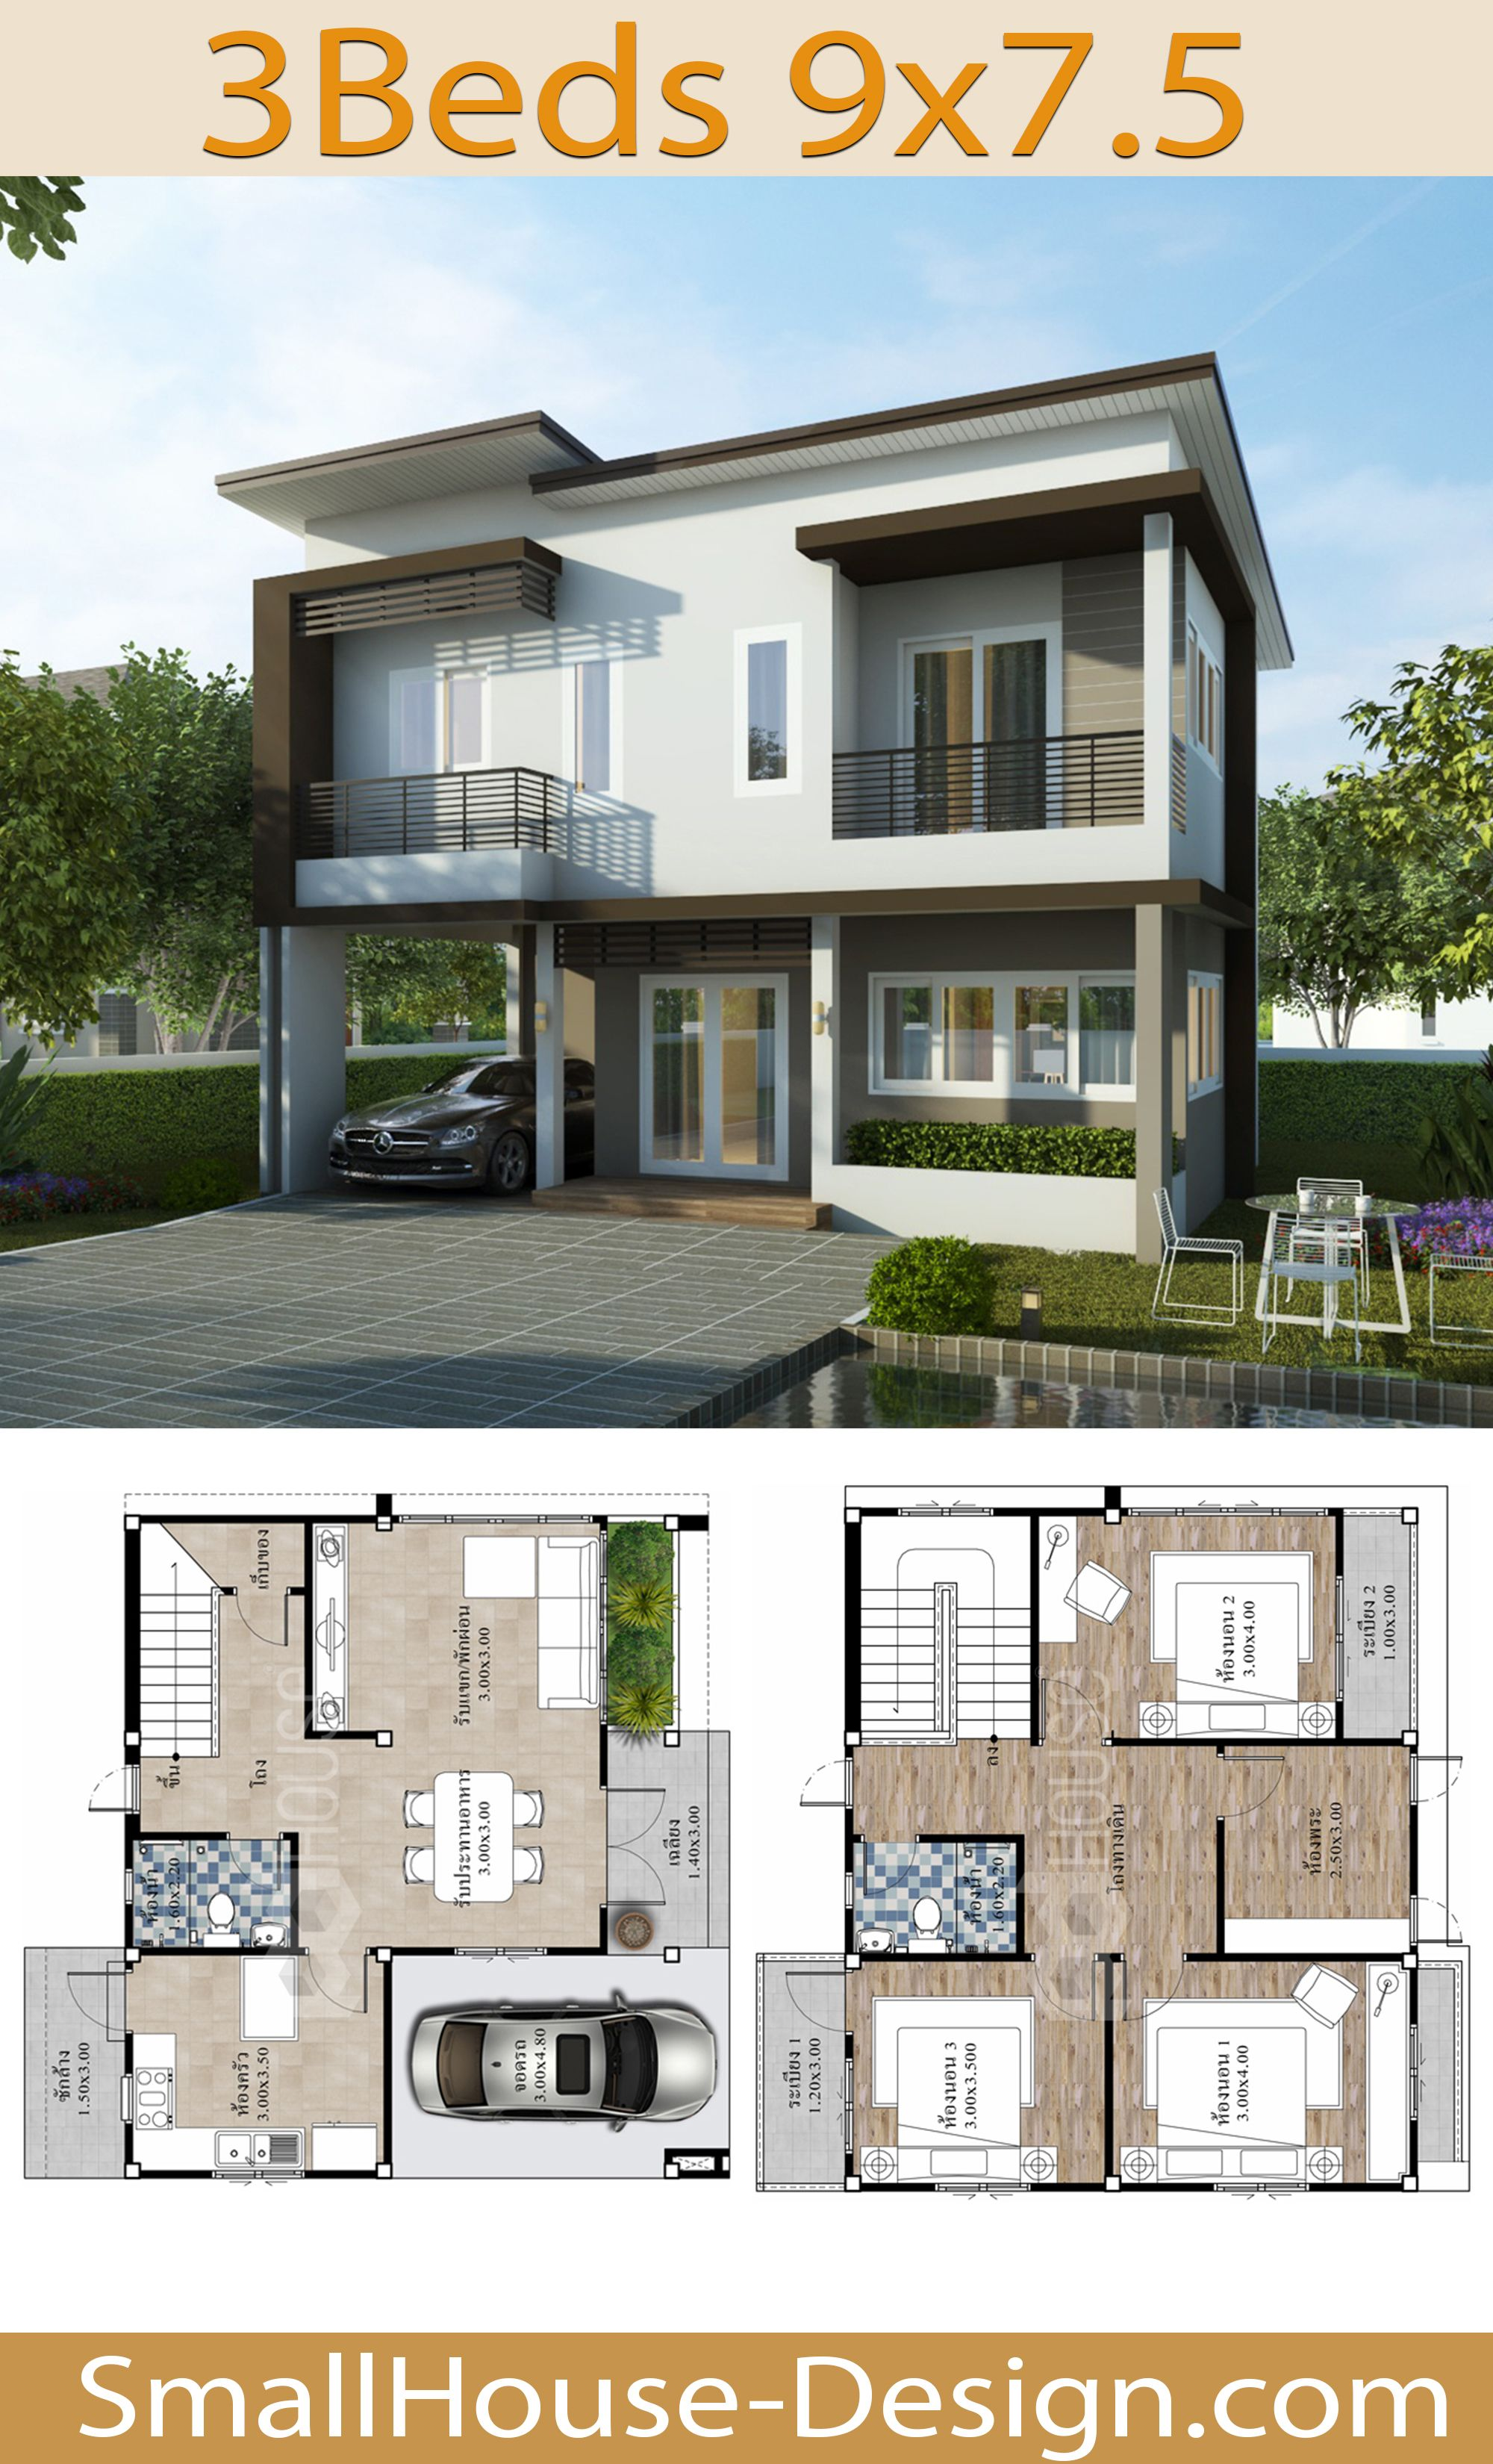 Simple House Design 9x7 5 With 3 Bedrooms Simple House Design Tropical House Design Small House Design